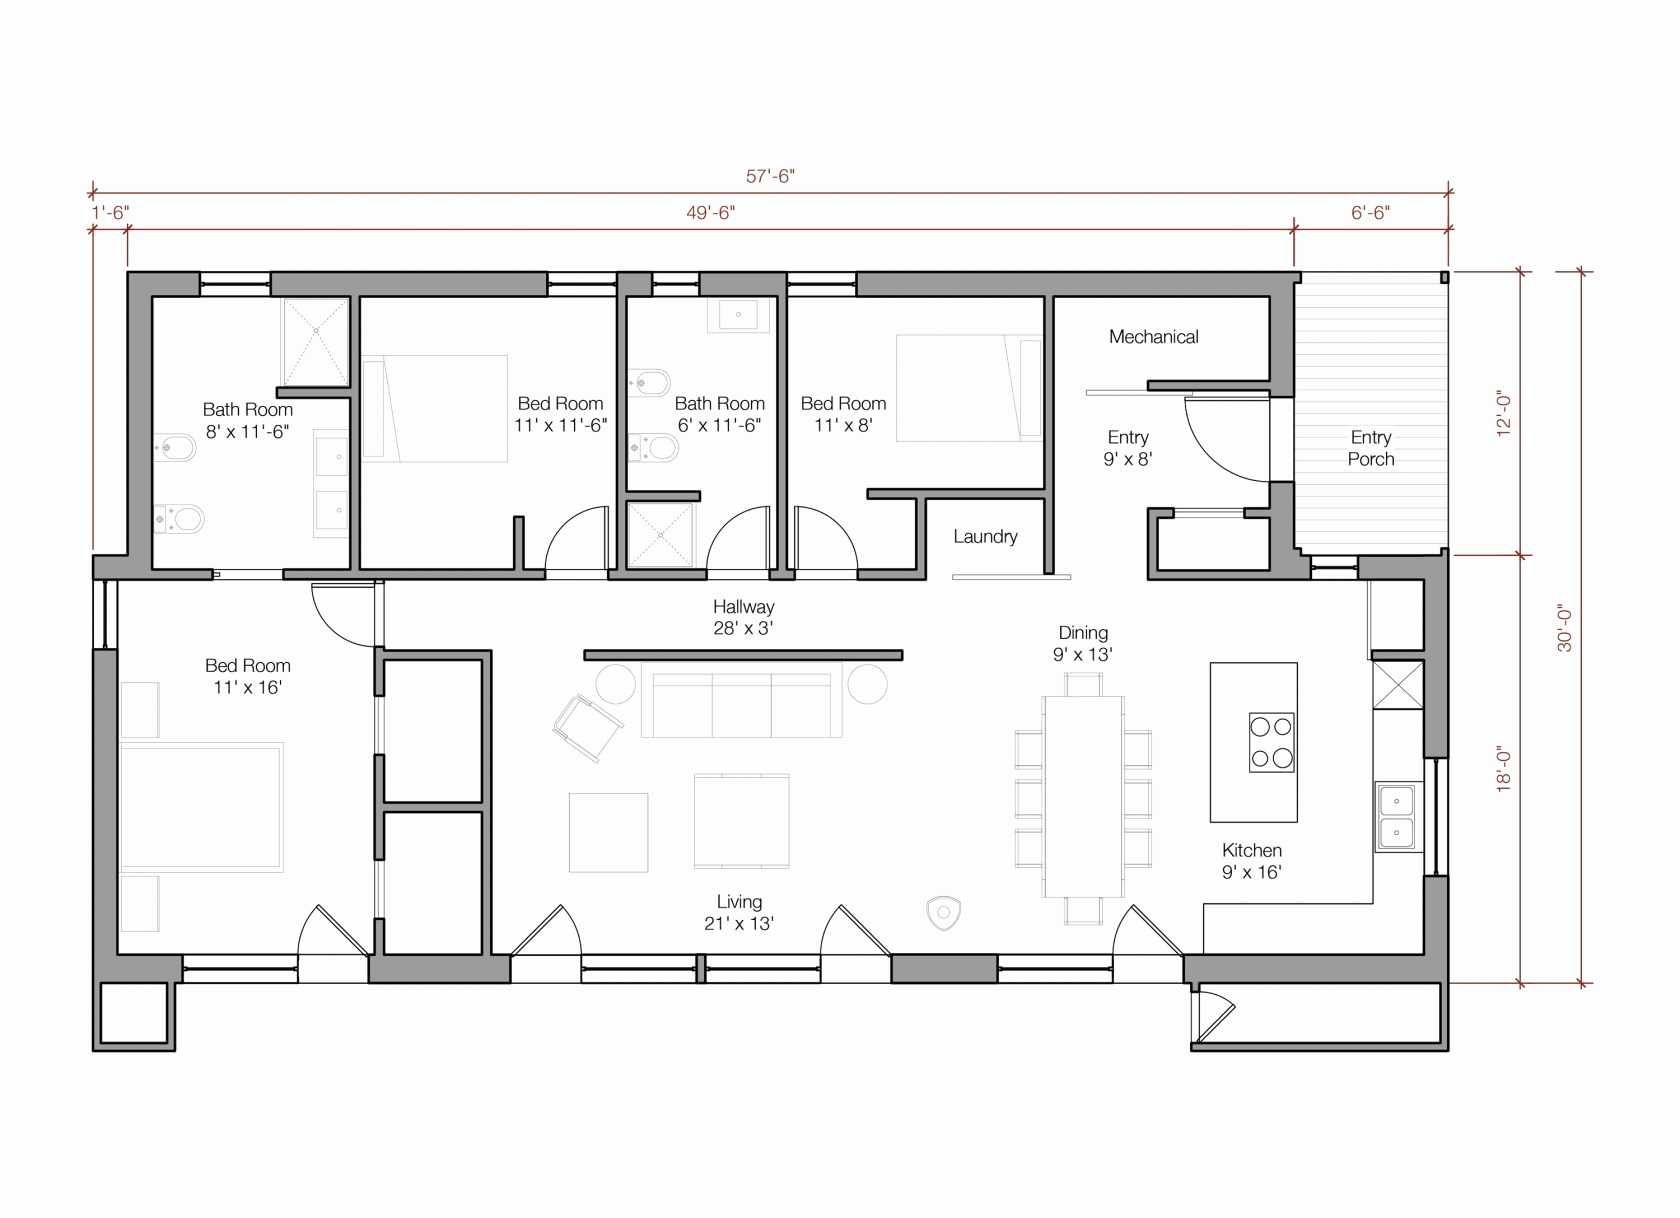 Most Energy Efficient House Plans and Appealing Space ... on economical home plans, affordable home plans, safe home plans, fun home plans, smart small home plans,